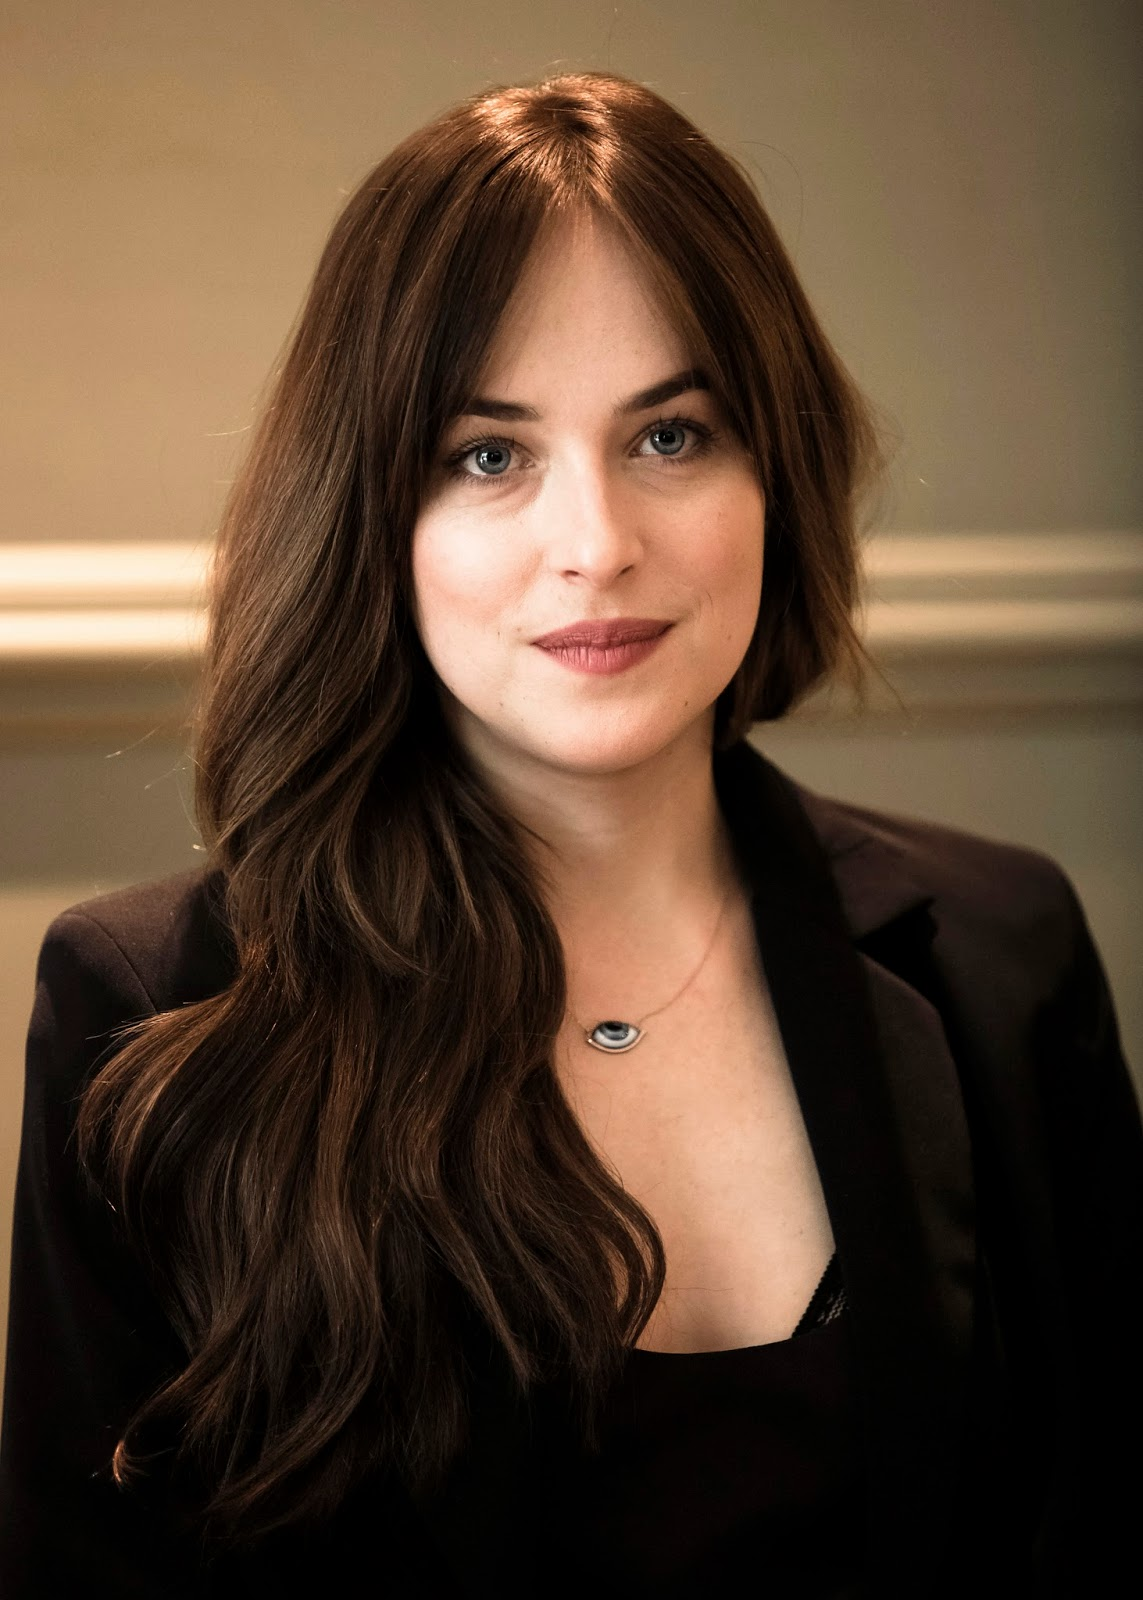 dakota johnson - photo #43